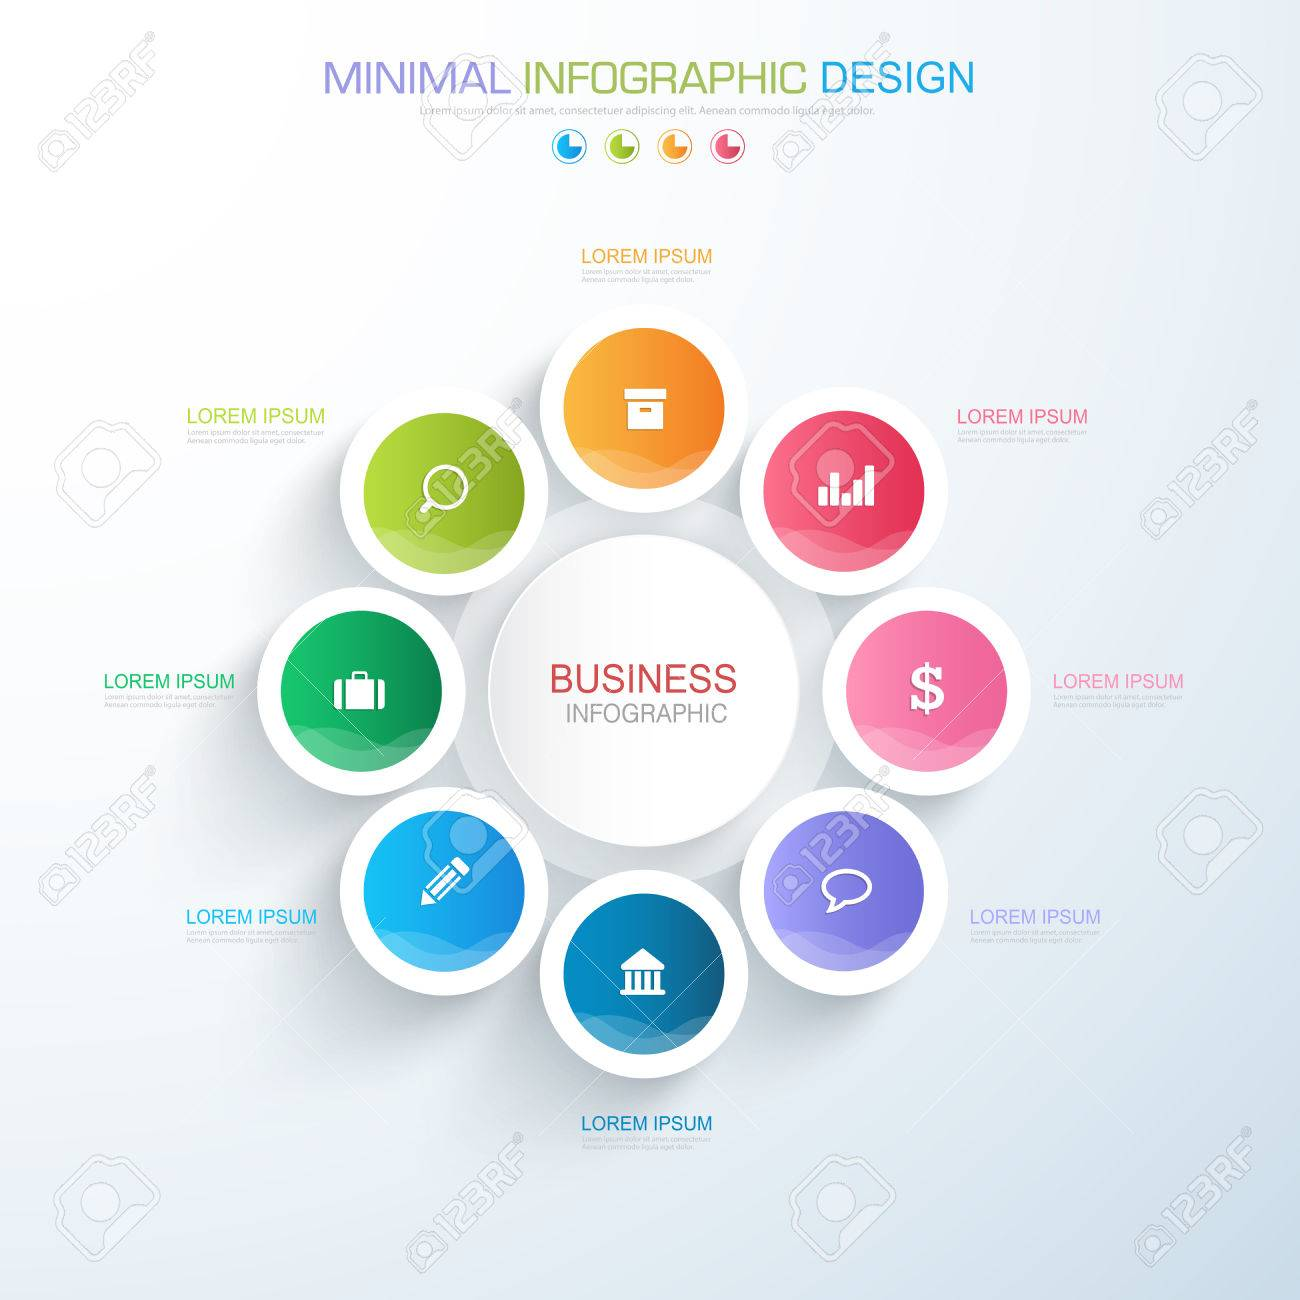 Infographic elements with business icon on full color background infographic elements with business icon on full color background process or steps and options workflow diagrams ccuart Choice Image